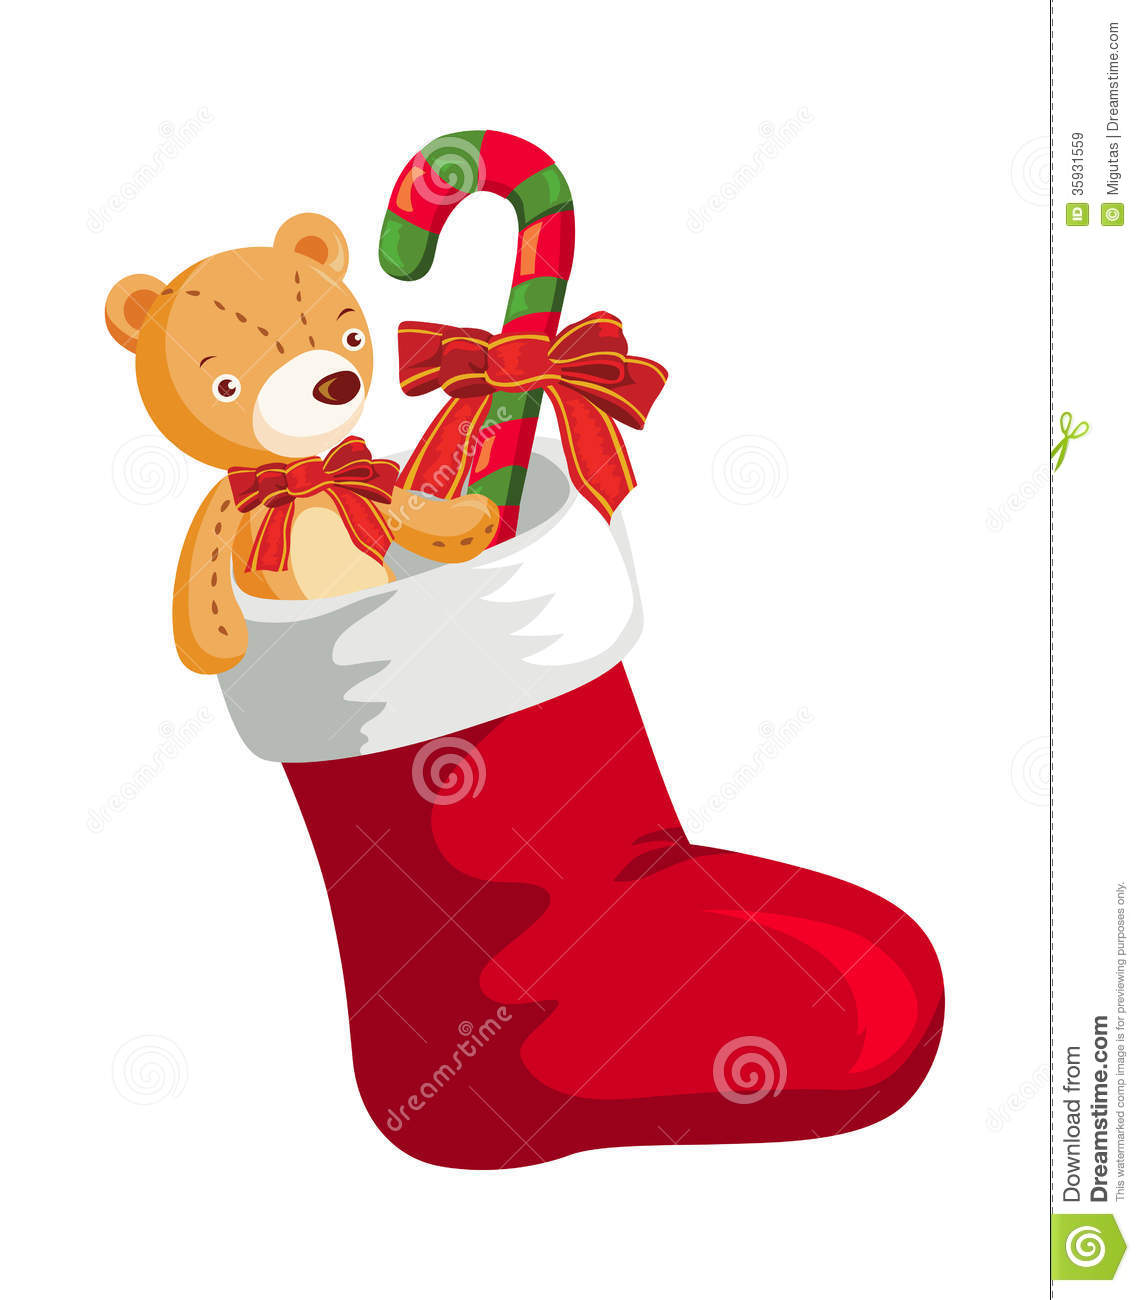 Christmas Toys Cartoon : Christmas stocking stock vector illustration of winter